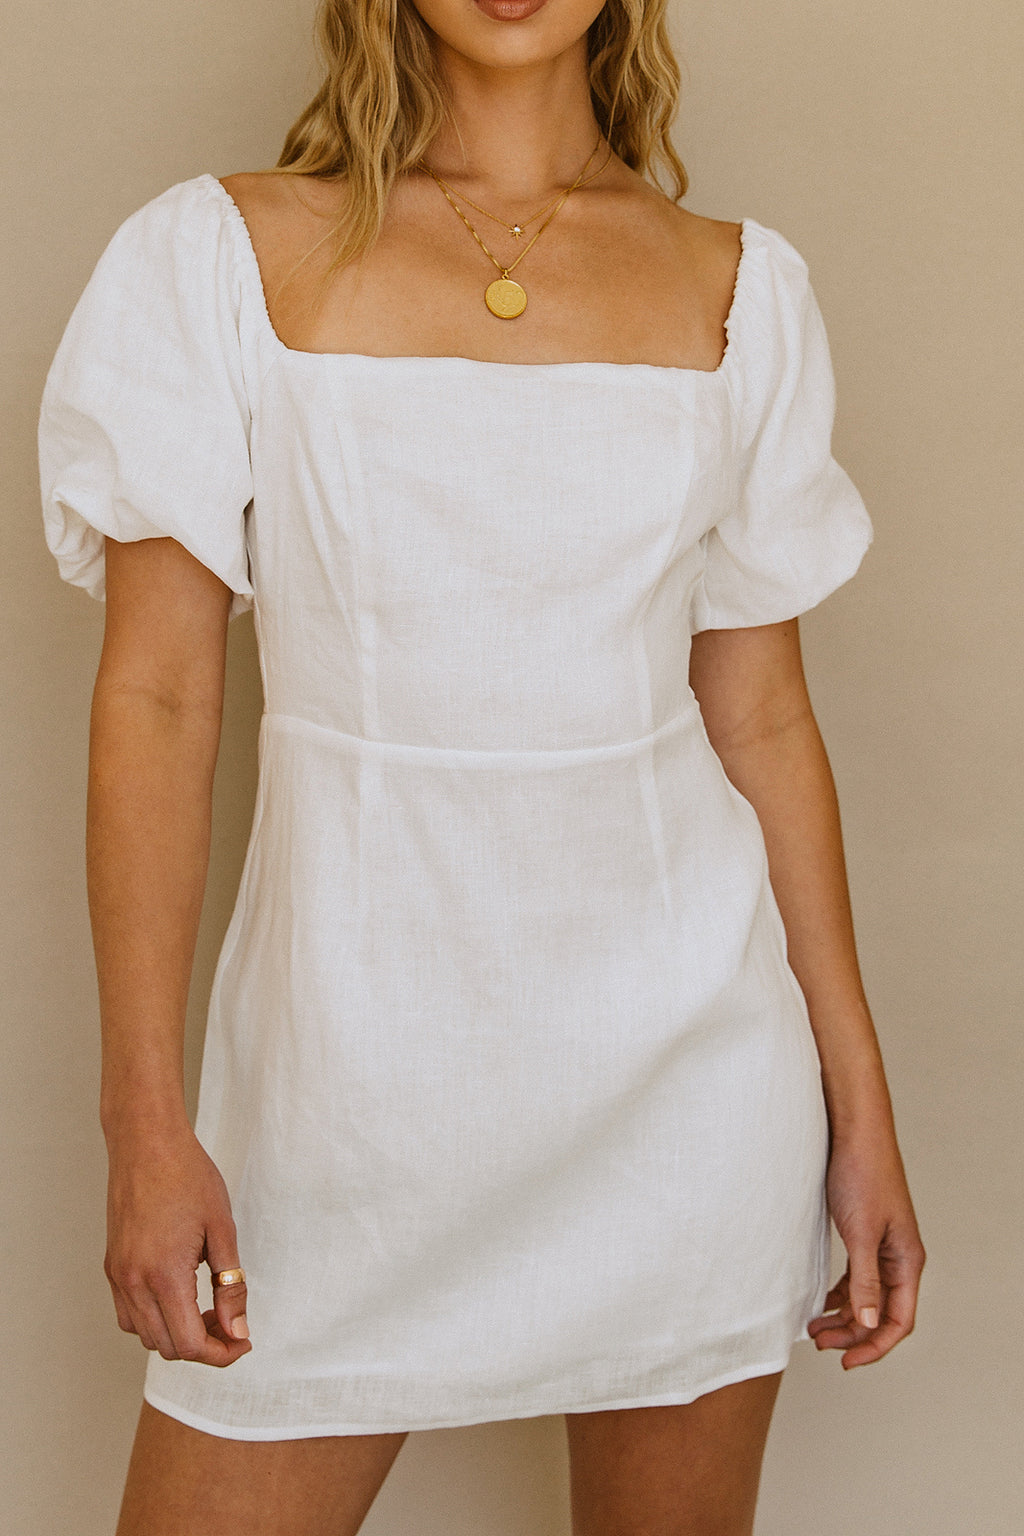 Catalina Island Linen Dress - White